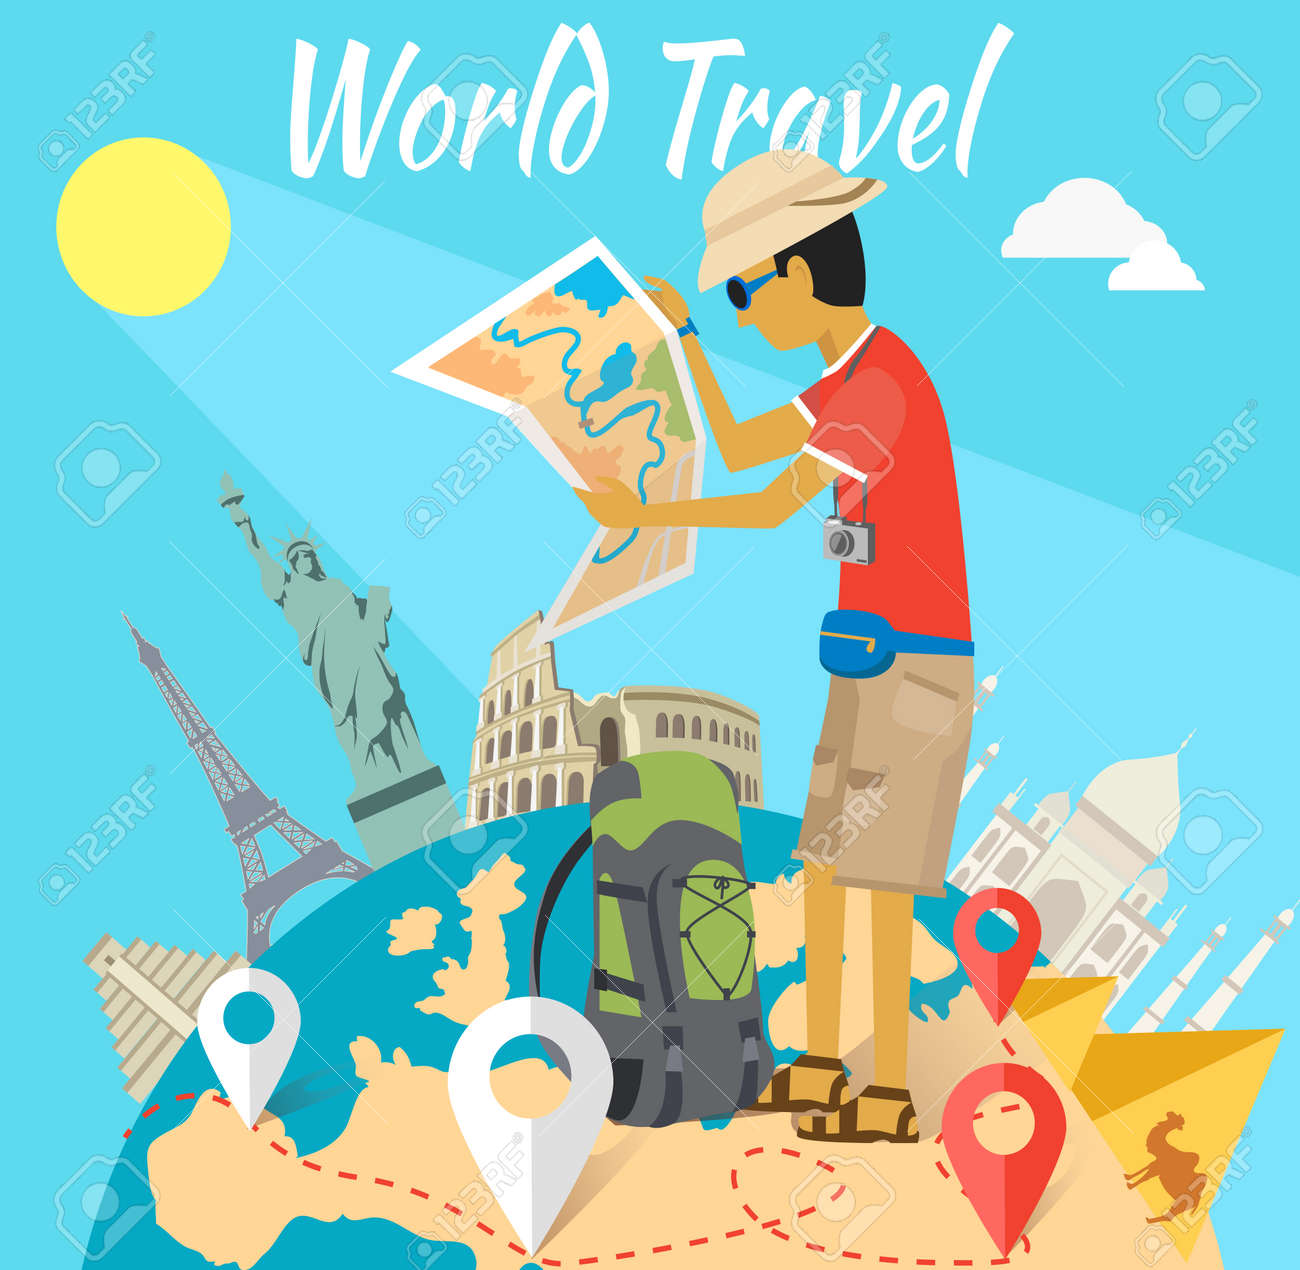 Concept of the world adventure travel. Relaxation journey, leisure and rest tourism, statue liberty, eiffel tower, colosseum and tourist with map, trip global tour illustration - 45480253